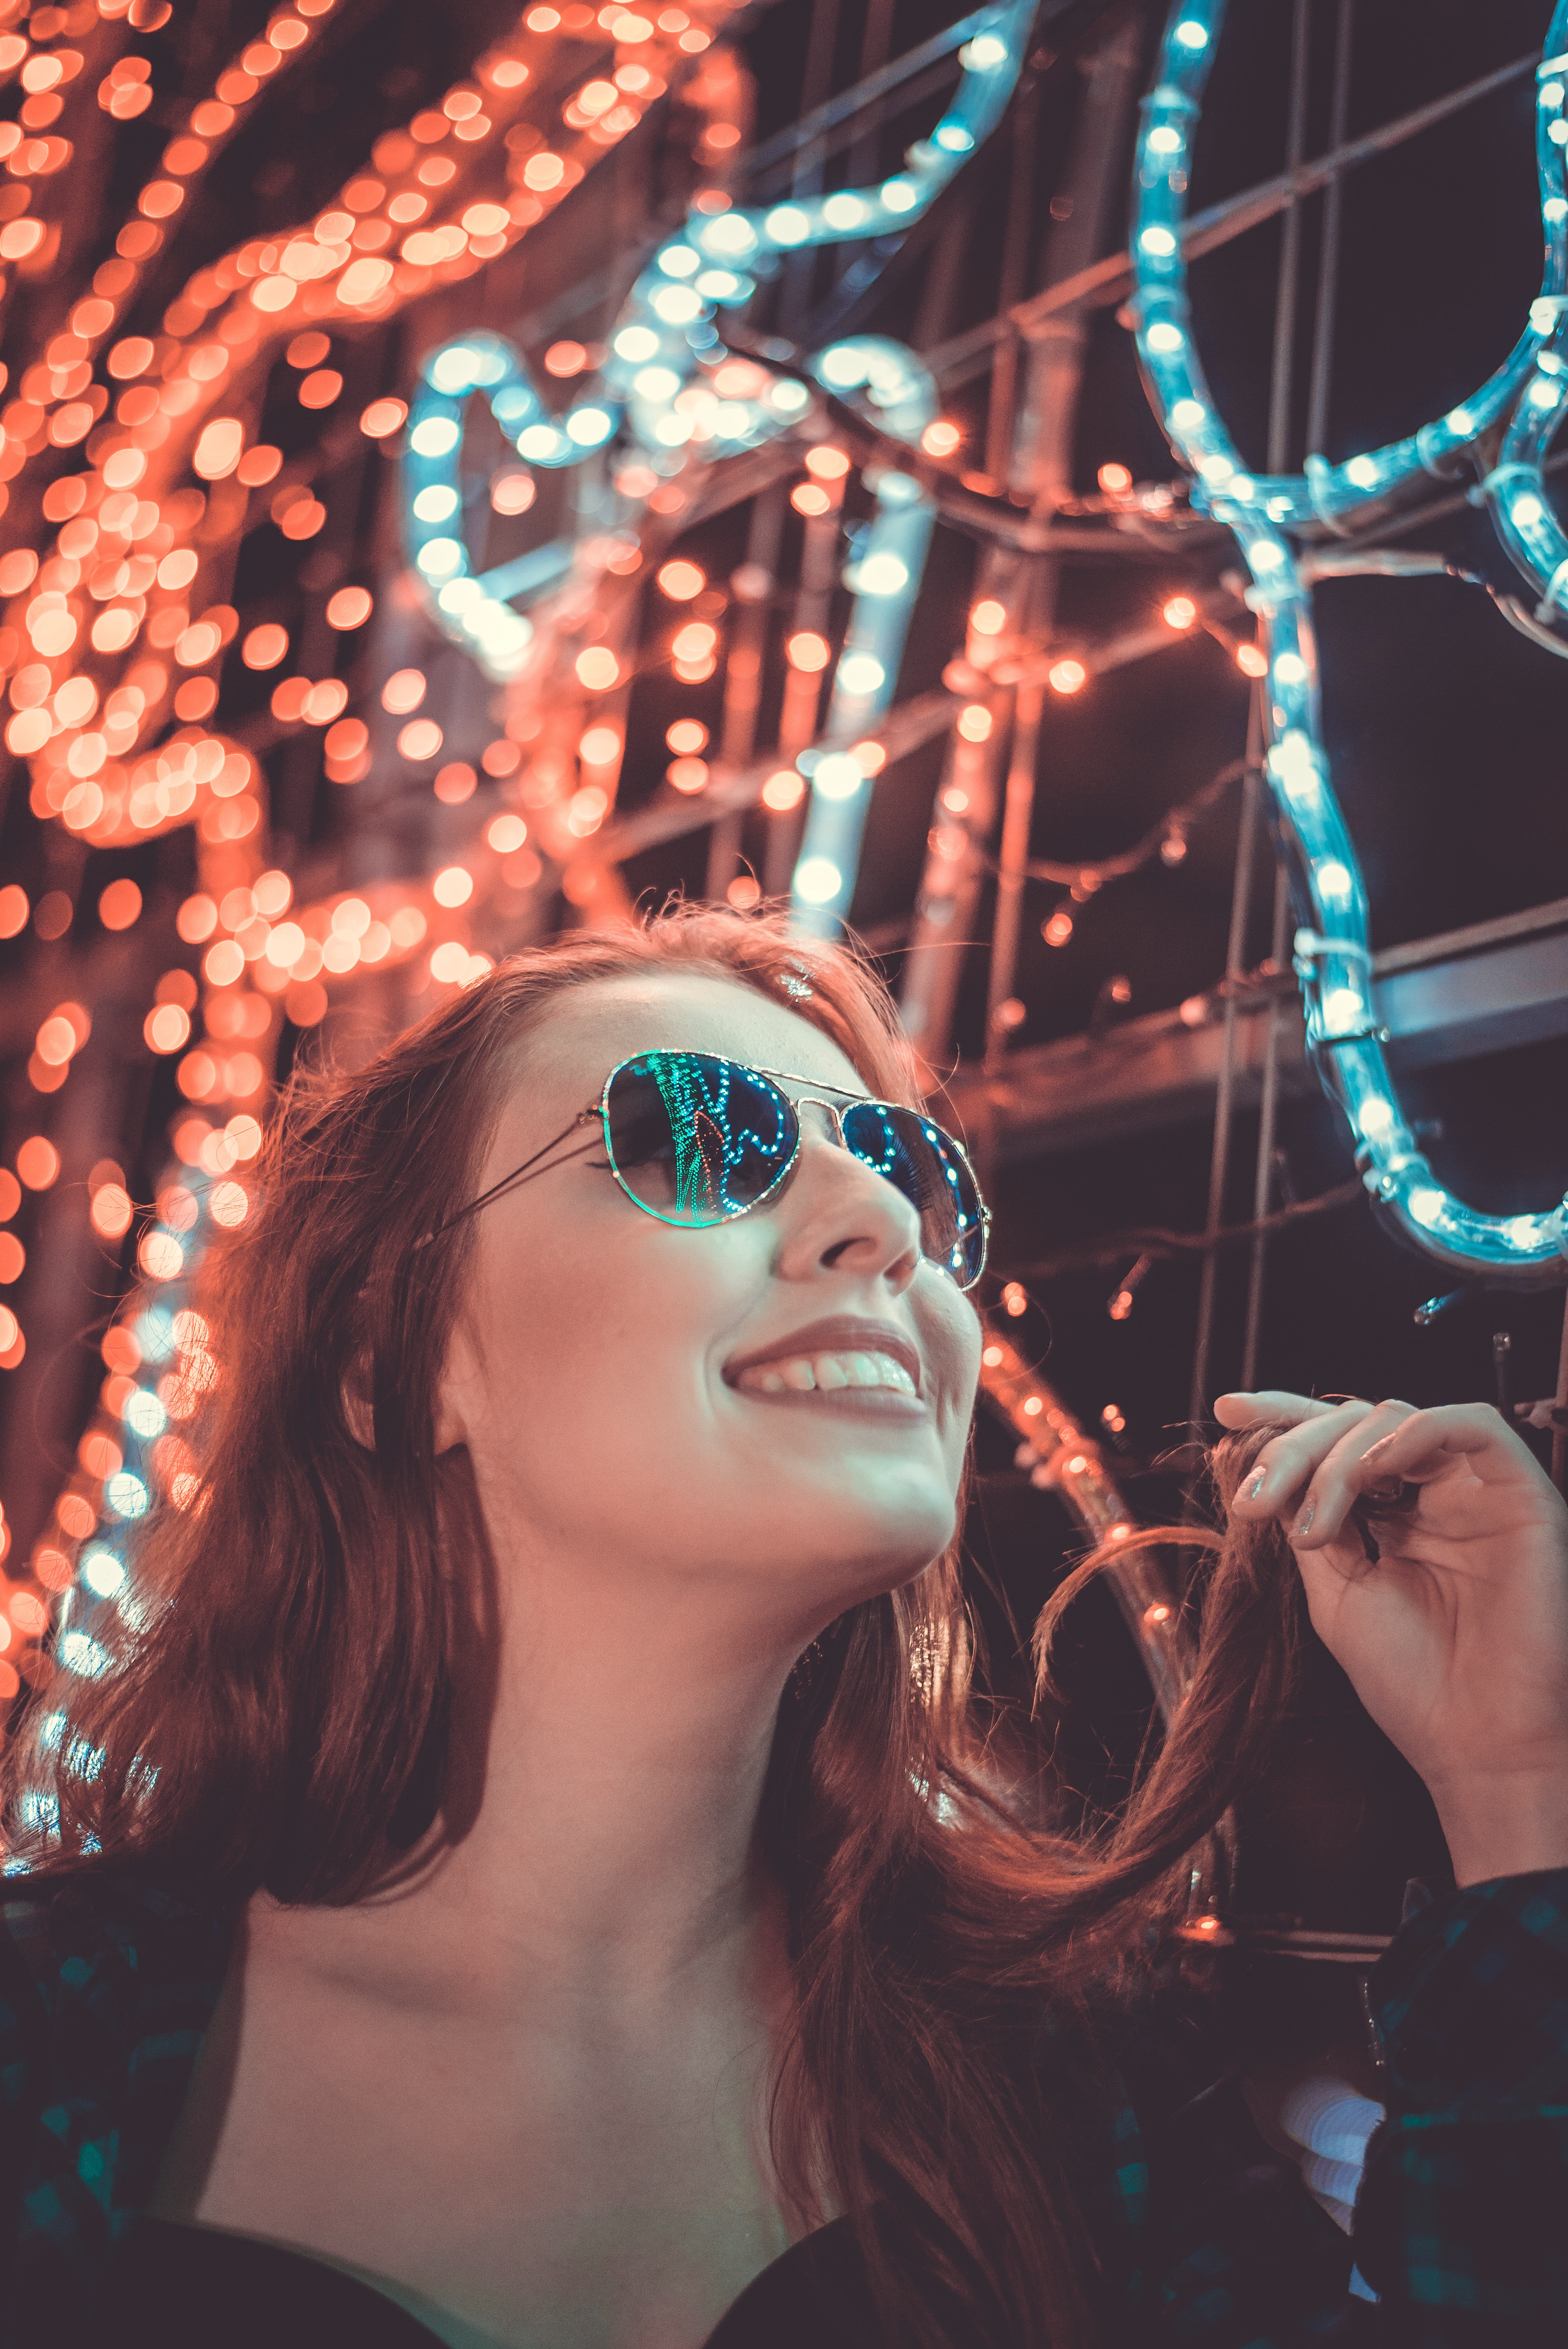 Woman Wearing Sunglasses Holding Her Hair, Bokeh, Close -up, Face, Girl, HQ Photo